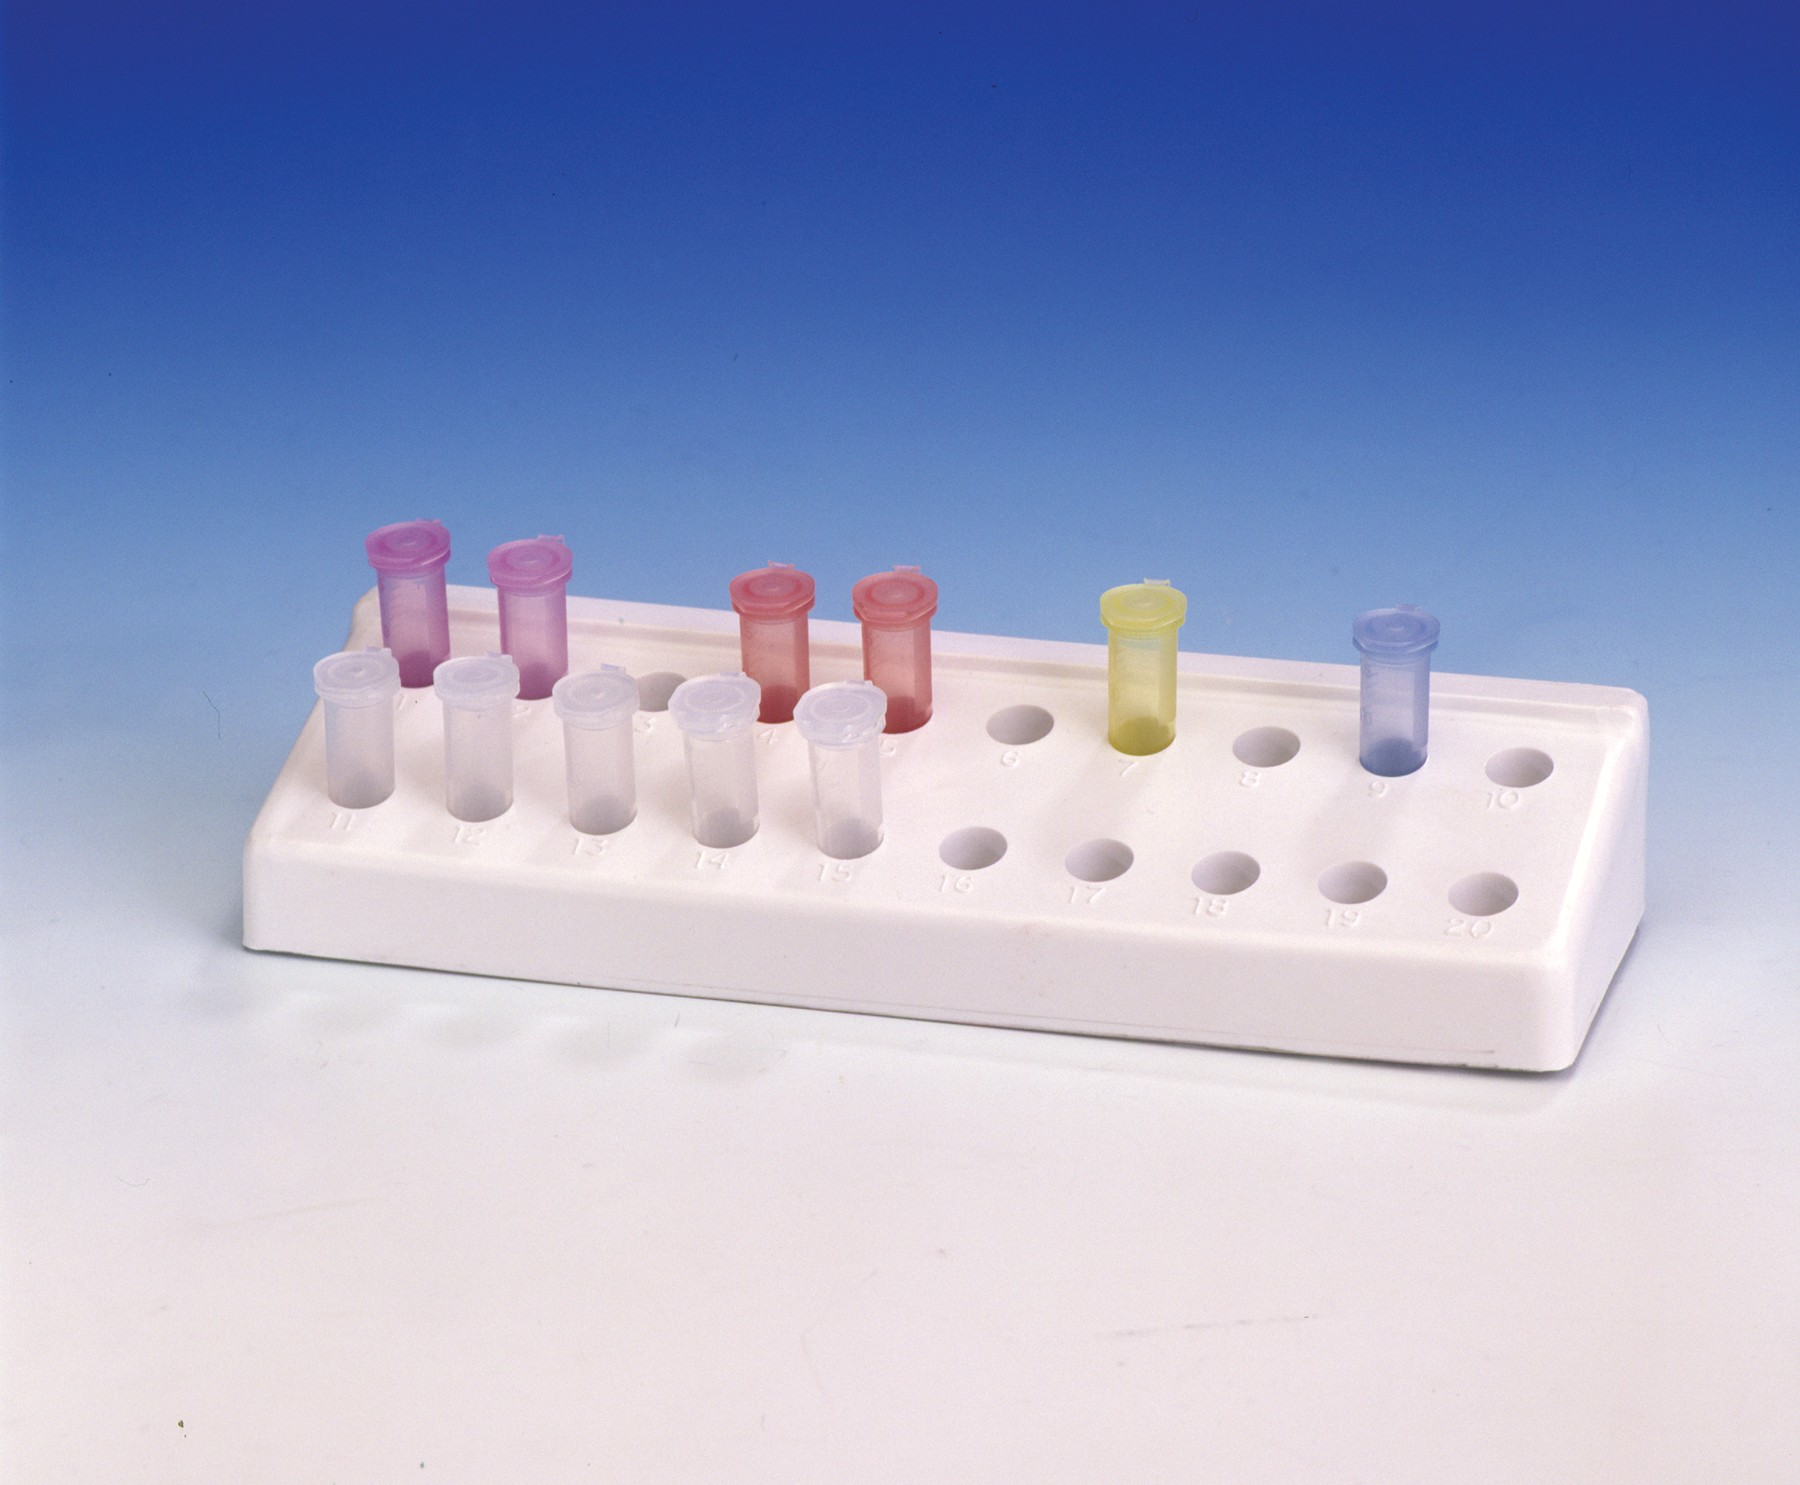 Pack of 5 Bel-Art F18845-0031 Microcentrifuge Tube Rack; 0.5 or 1.5-2.0ml Polypropylene Assorted Colors 96 Places